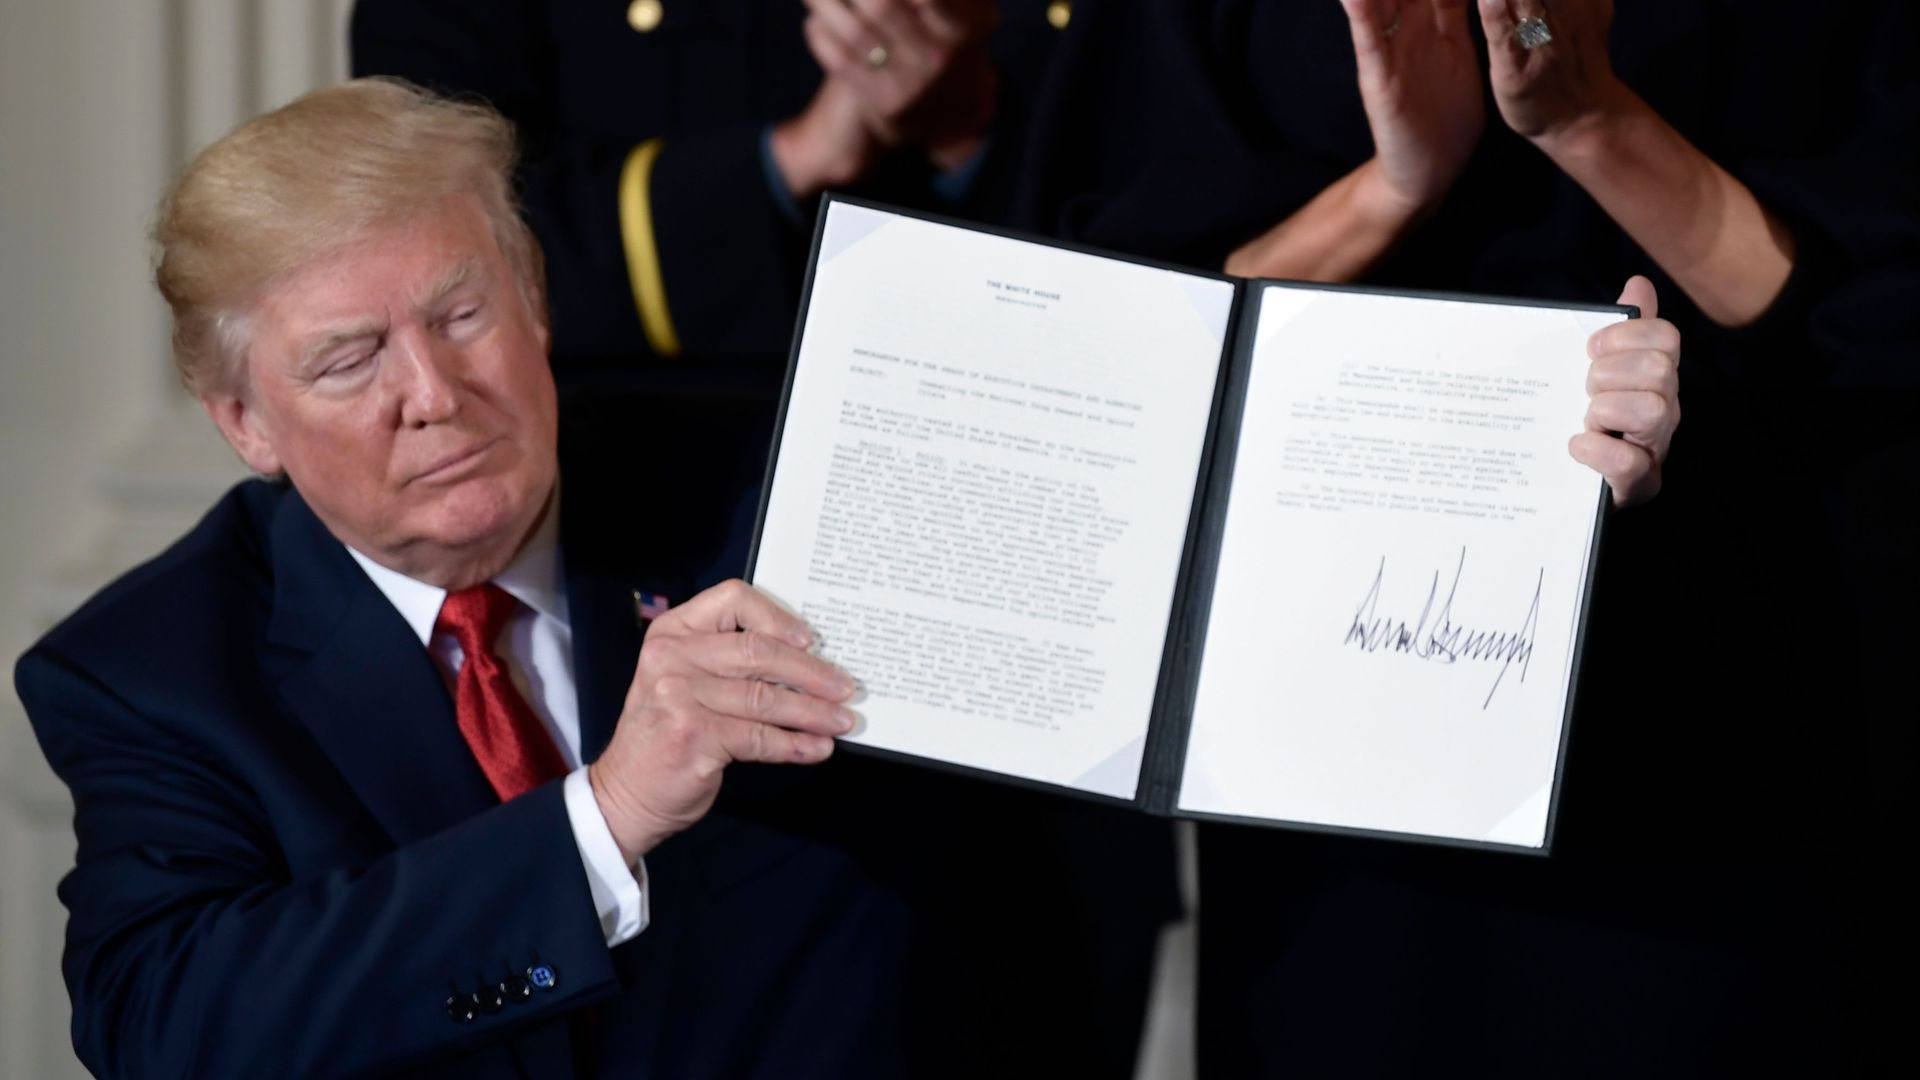 President Trump holding up a signed memo